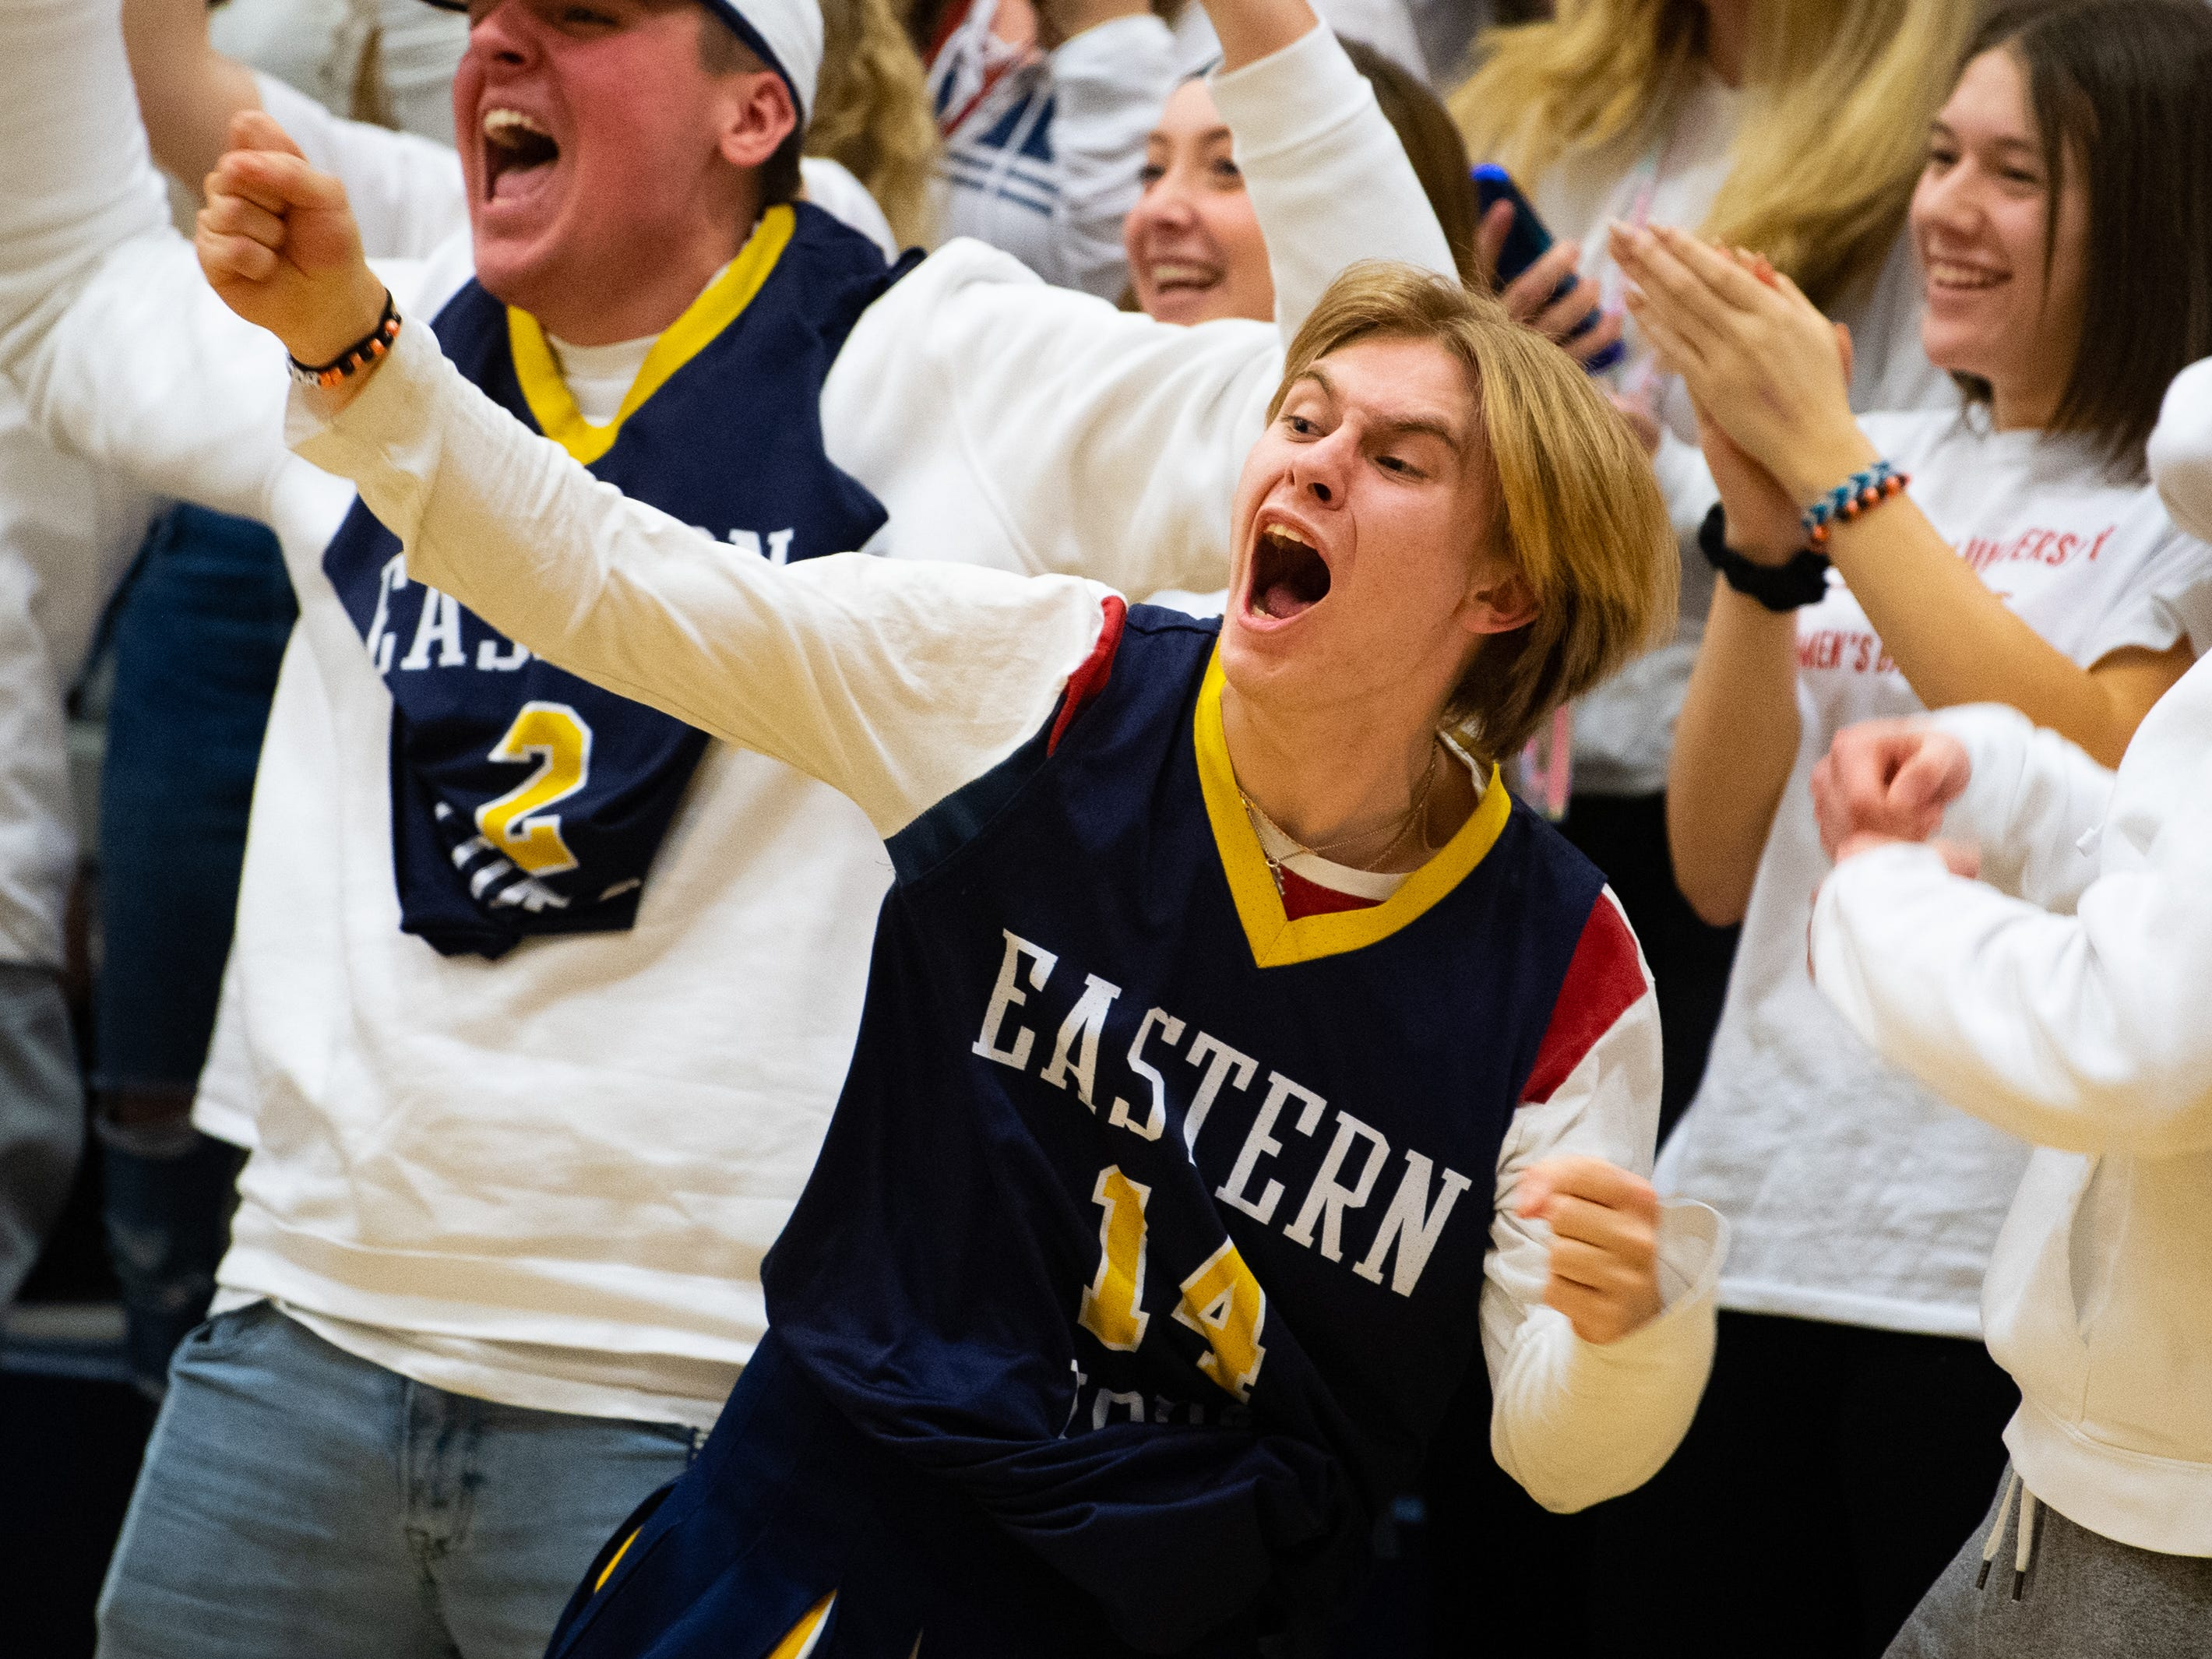 Eastern York's student section goes crazy after an and-1 play during the YAIAA boys' basketball game between Eastern York and West York, Friday, January 25, 2019. The Golden Knights defeated the Bulldogs 59 to 55.